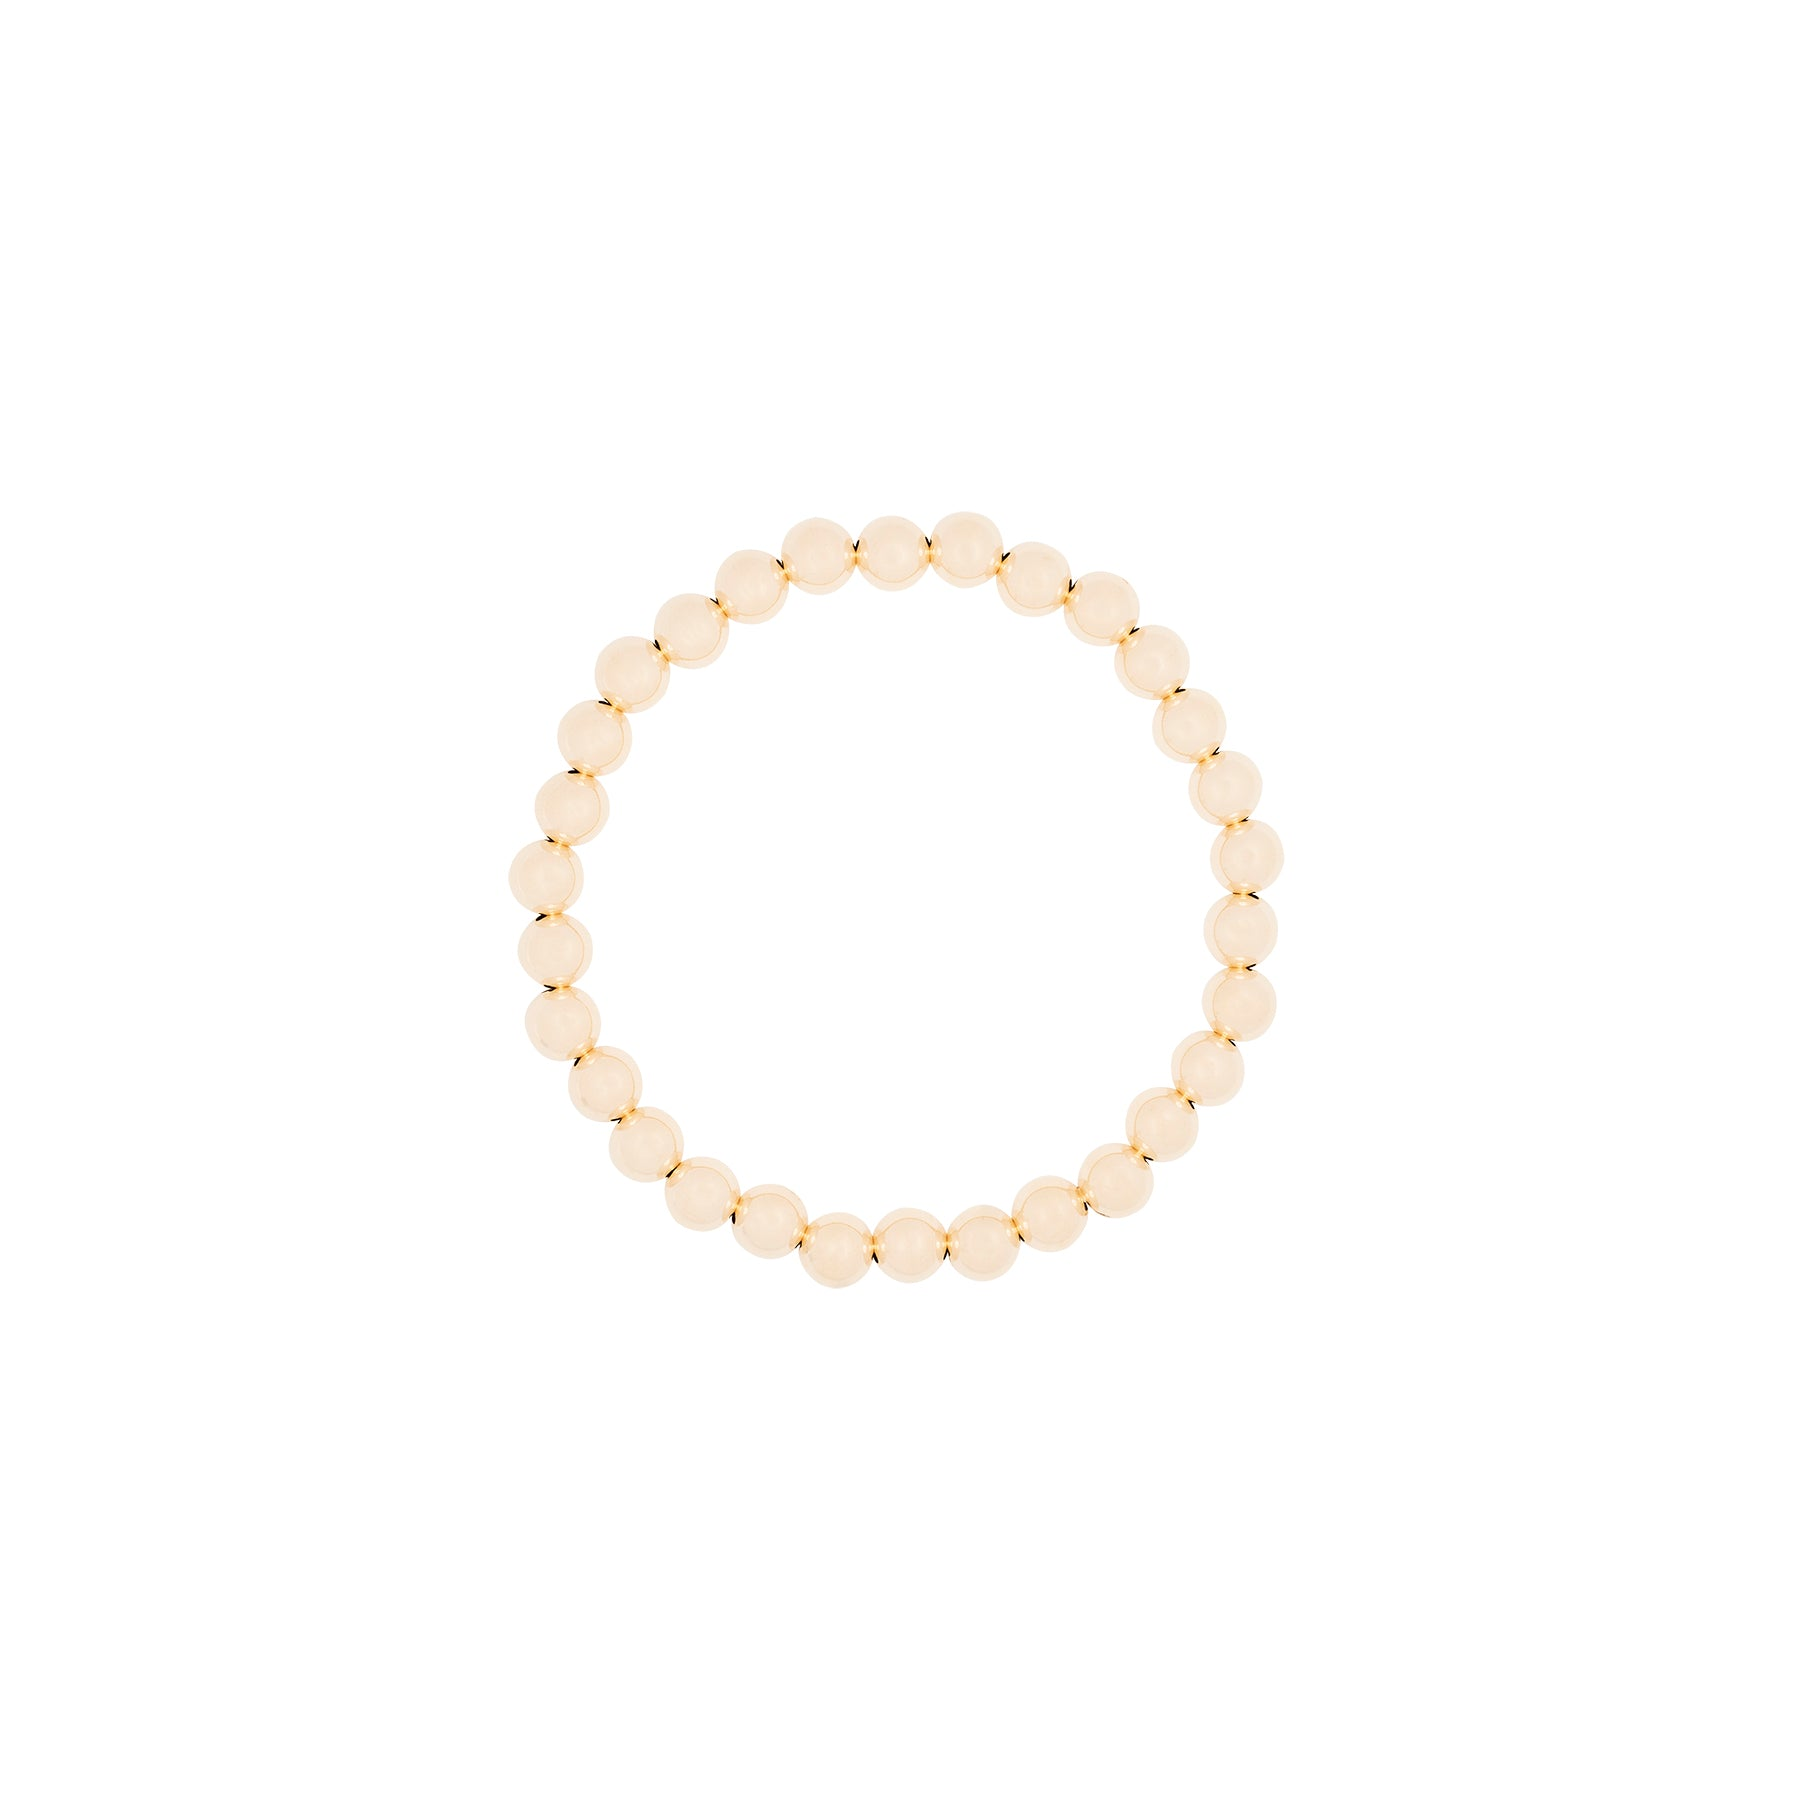 6MM Ball Stretch 14K Bracelet